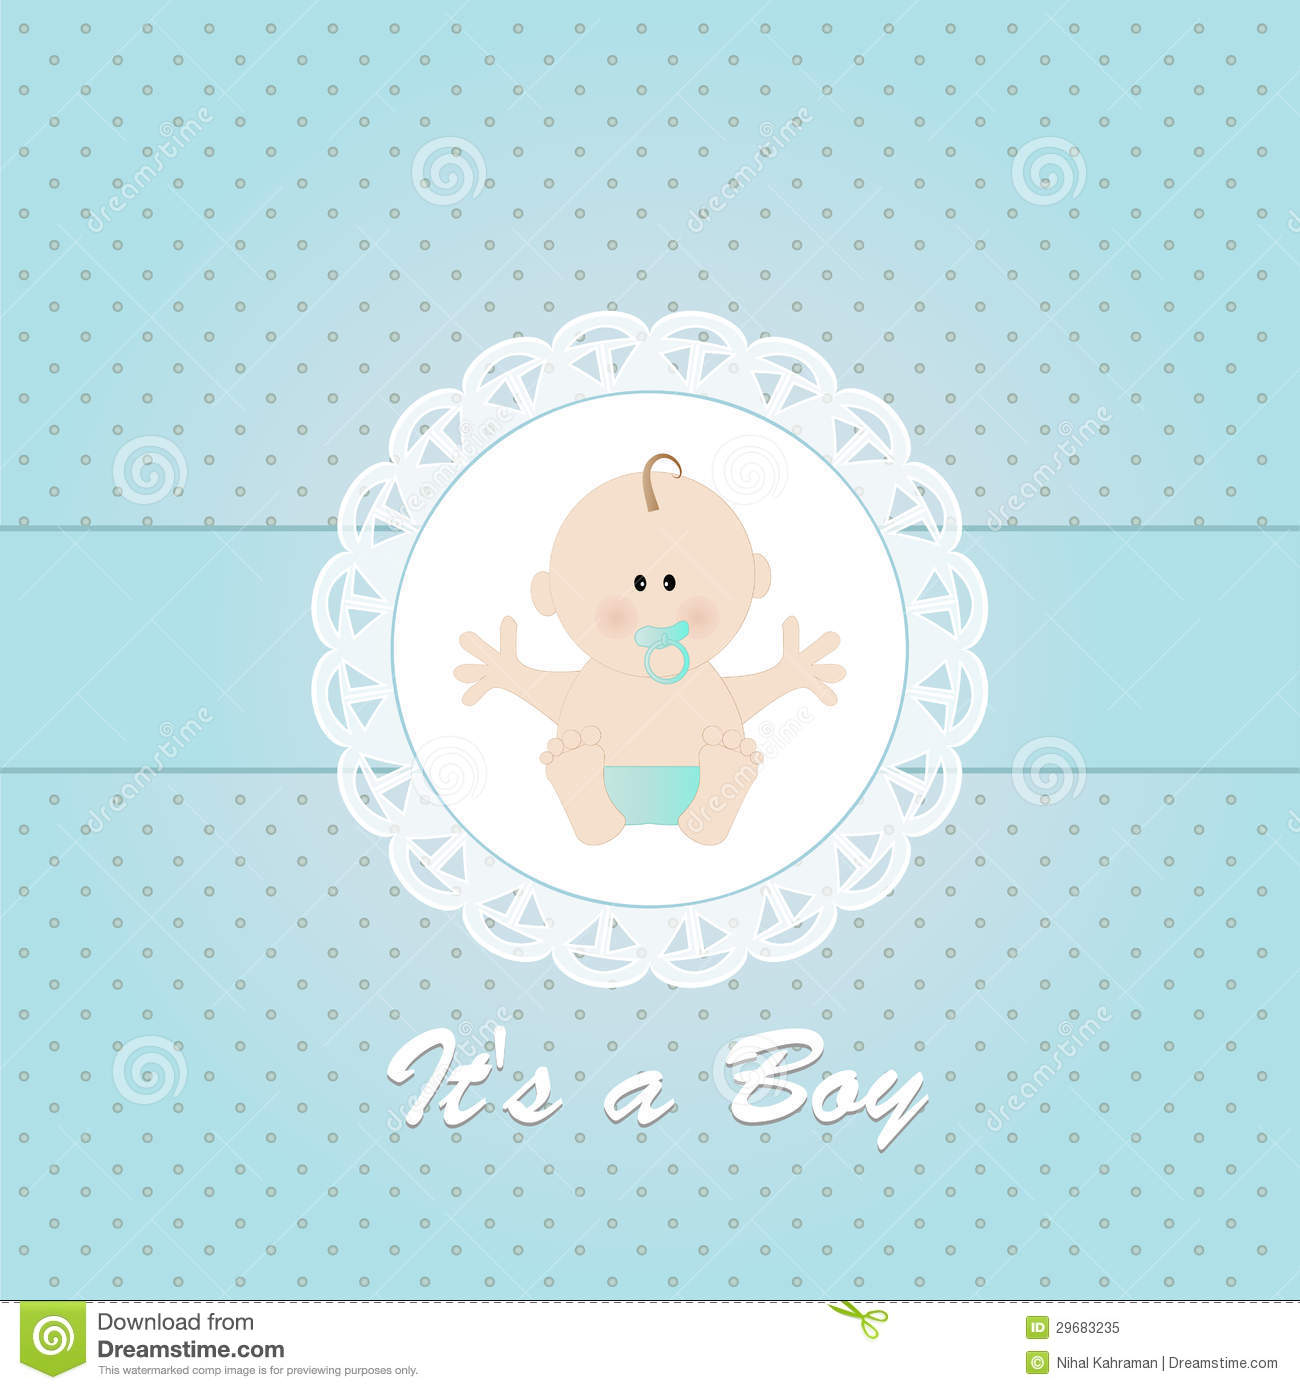 Baby Shower Invitation , With Newborn Baby Boy Royalty Free Stock